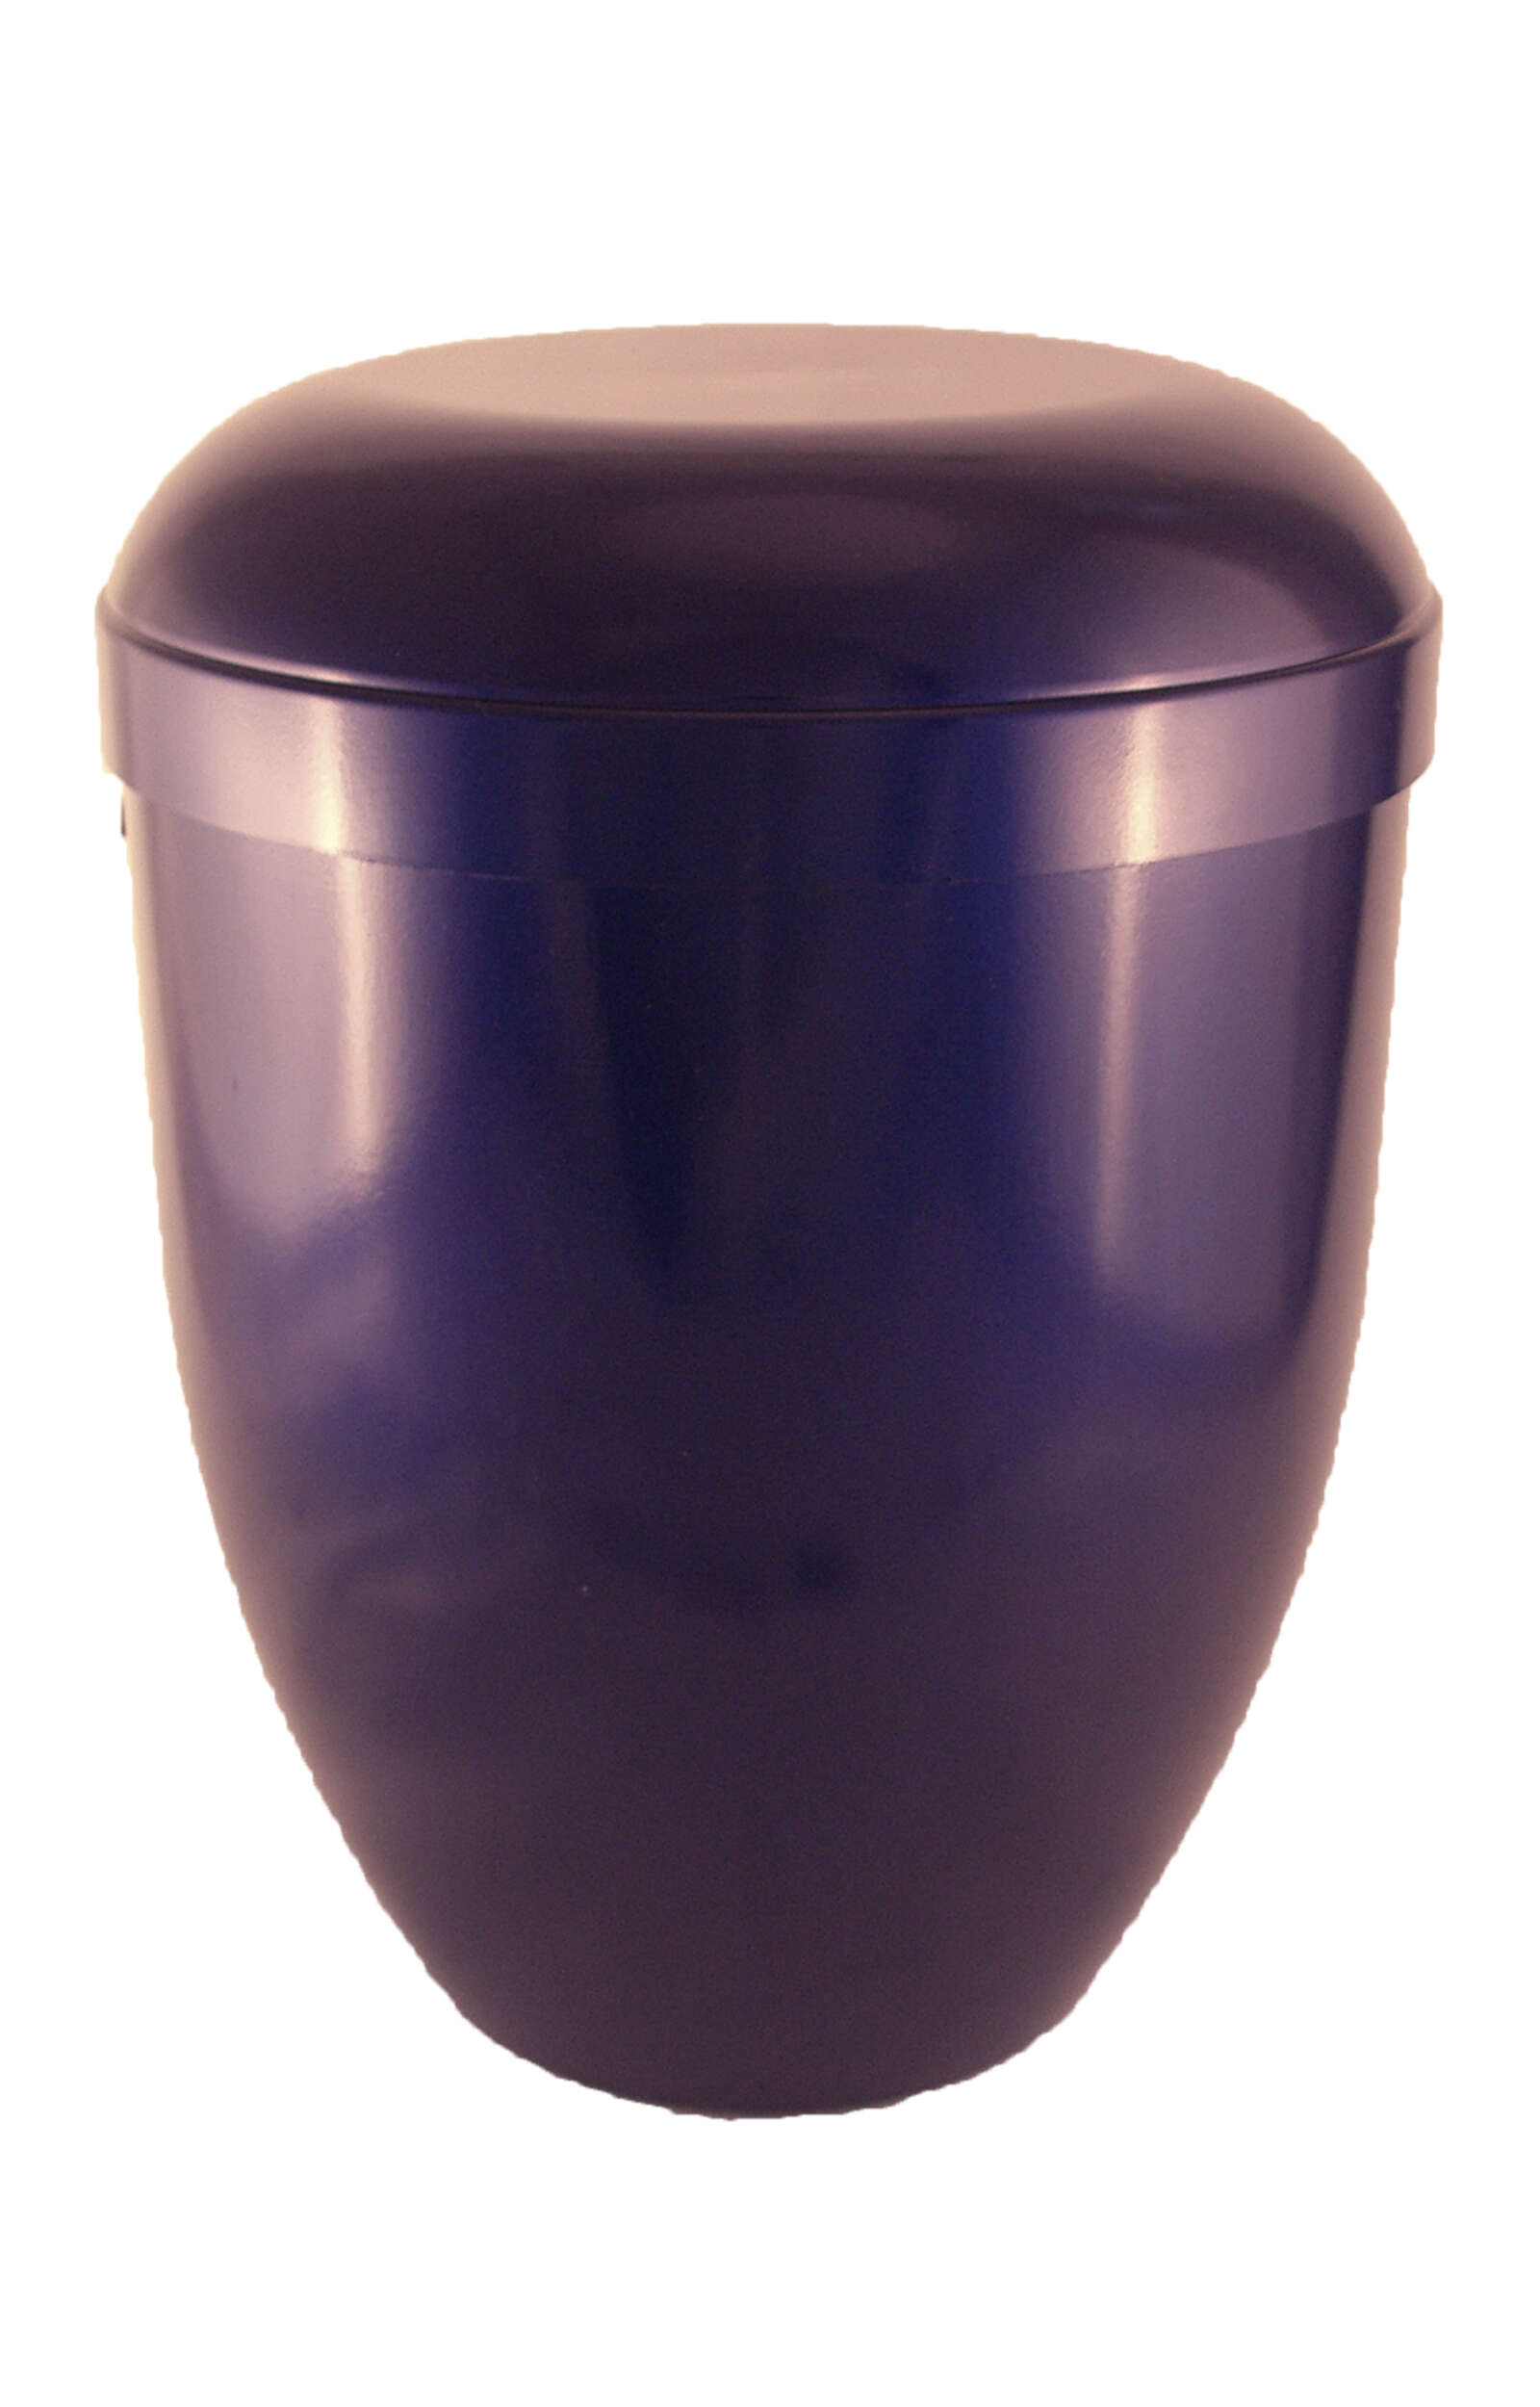 en BB3625 funeral urns for human ashes biodegradable urn glossy blue